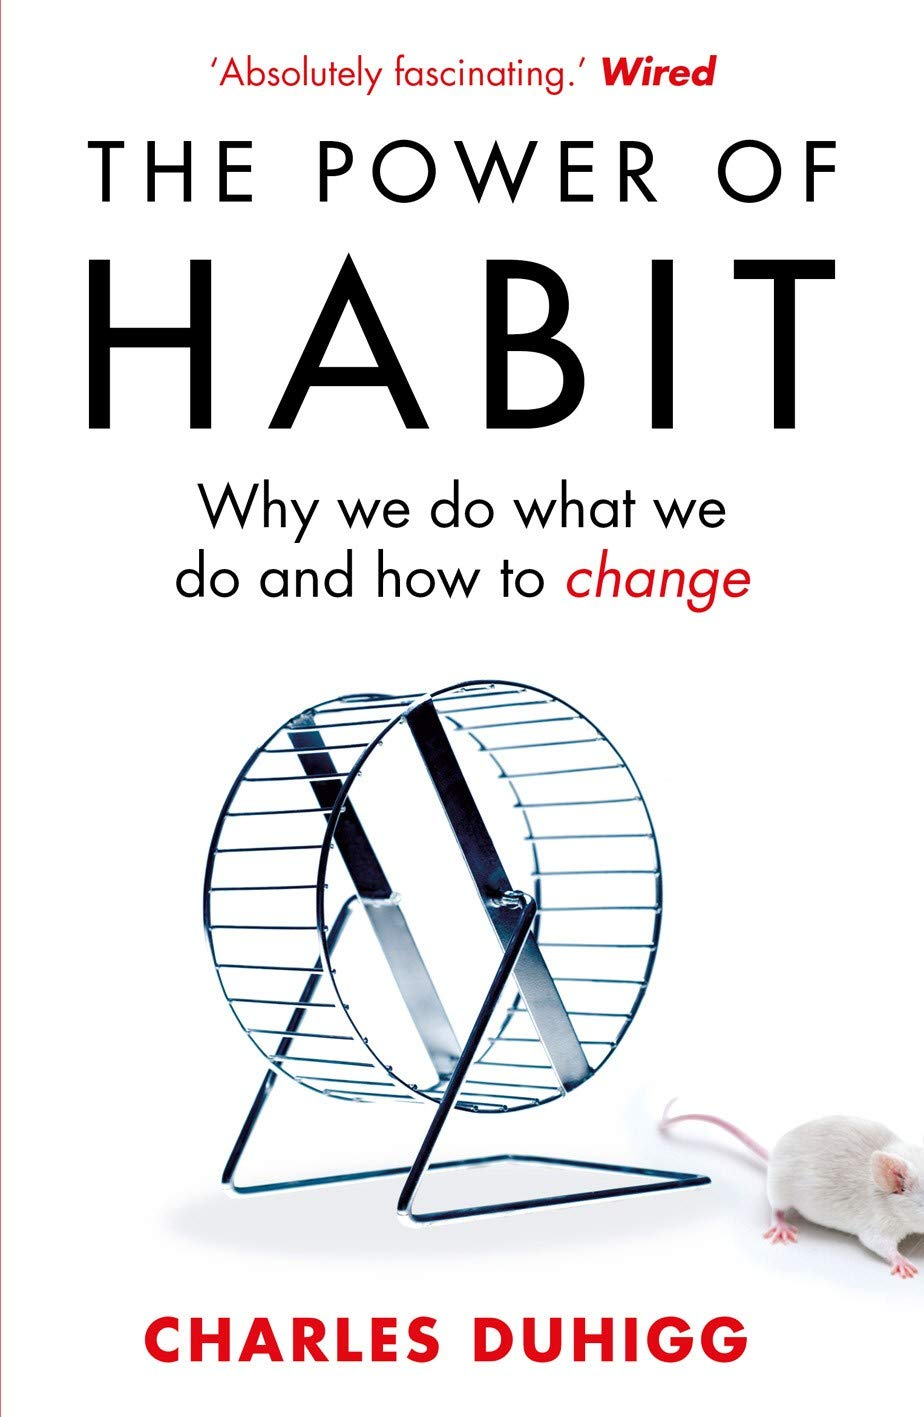 """The Power of Habit: Why We Do What We Do, and How to Change"" by Charles Duhigg"